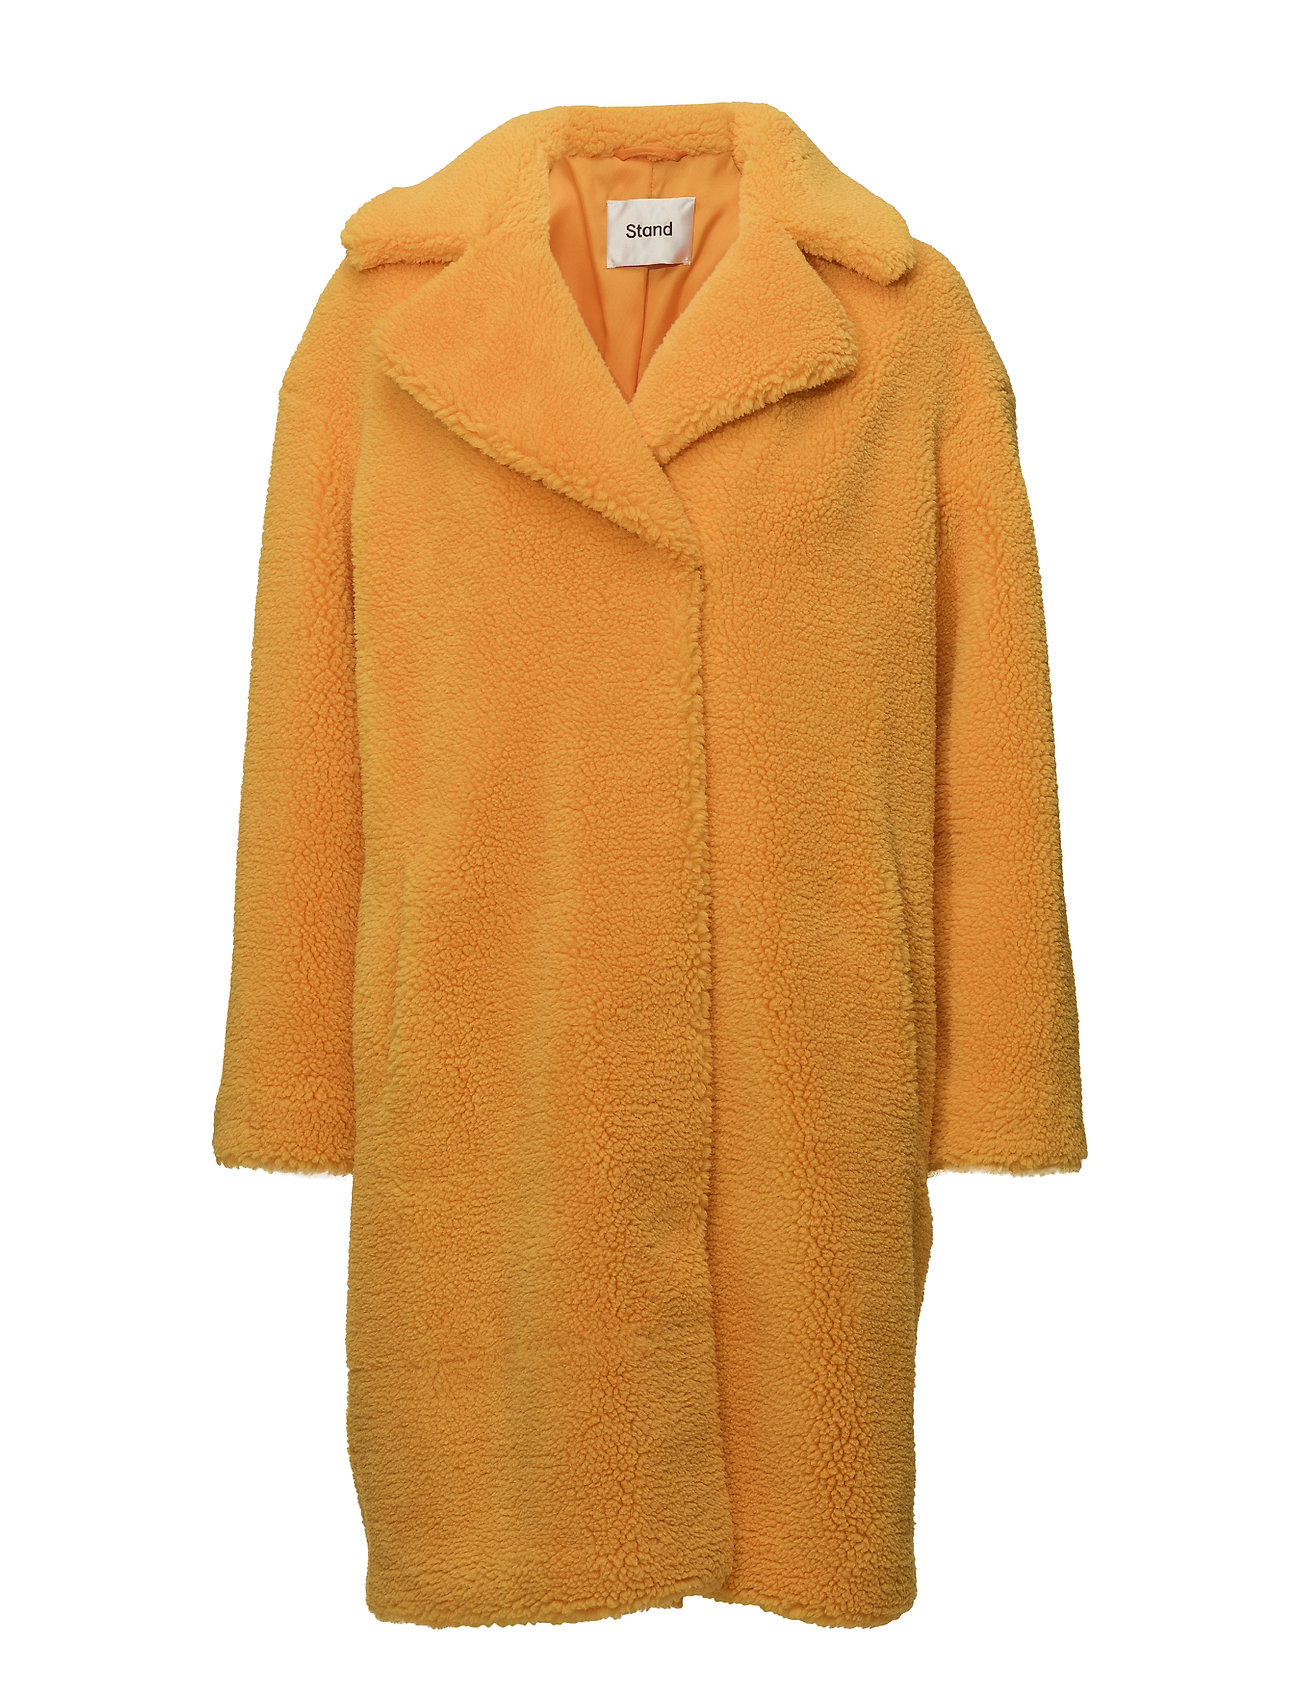 Image of Camille Coocon Coat (3073371237)